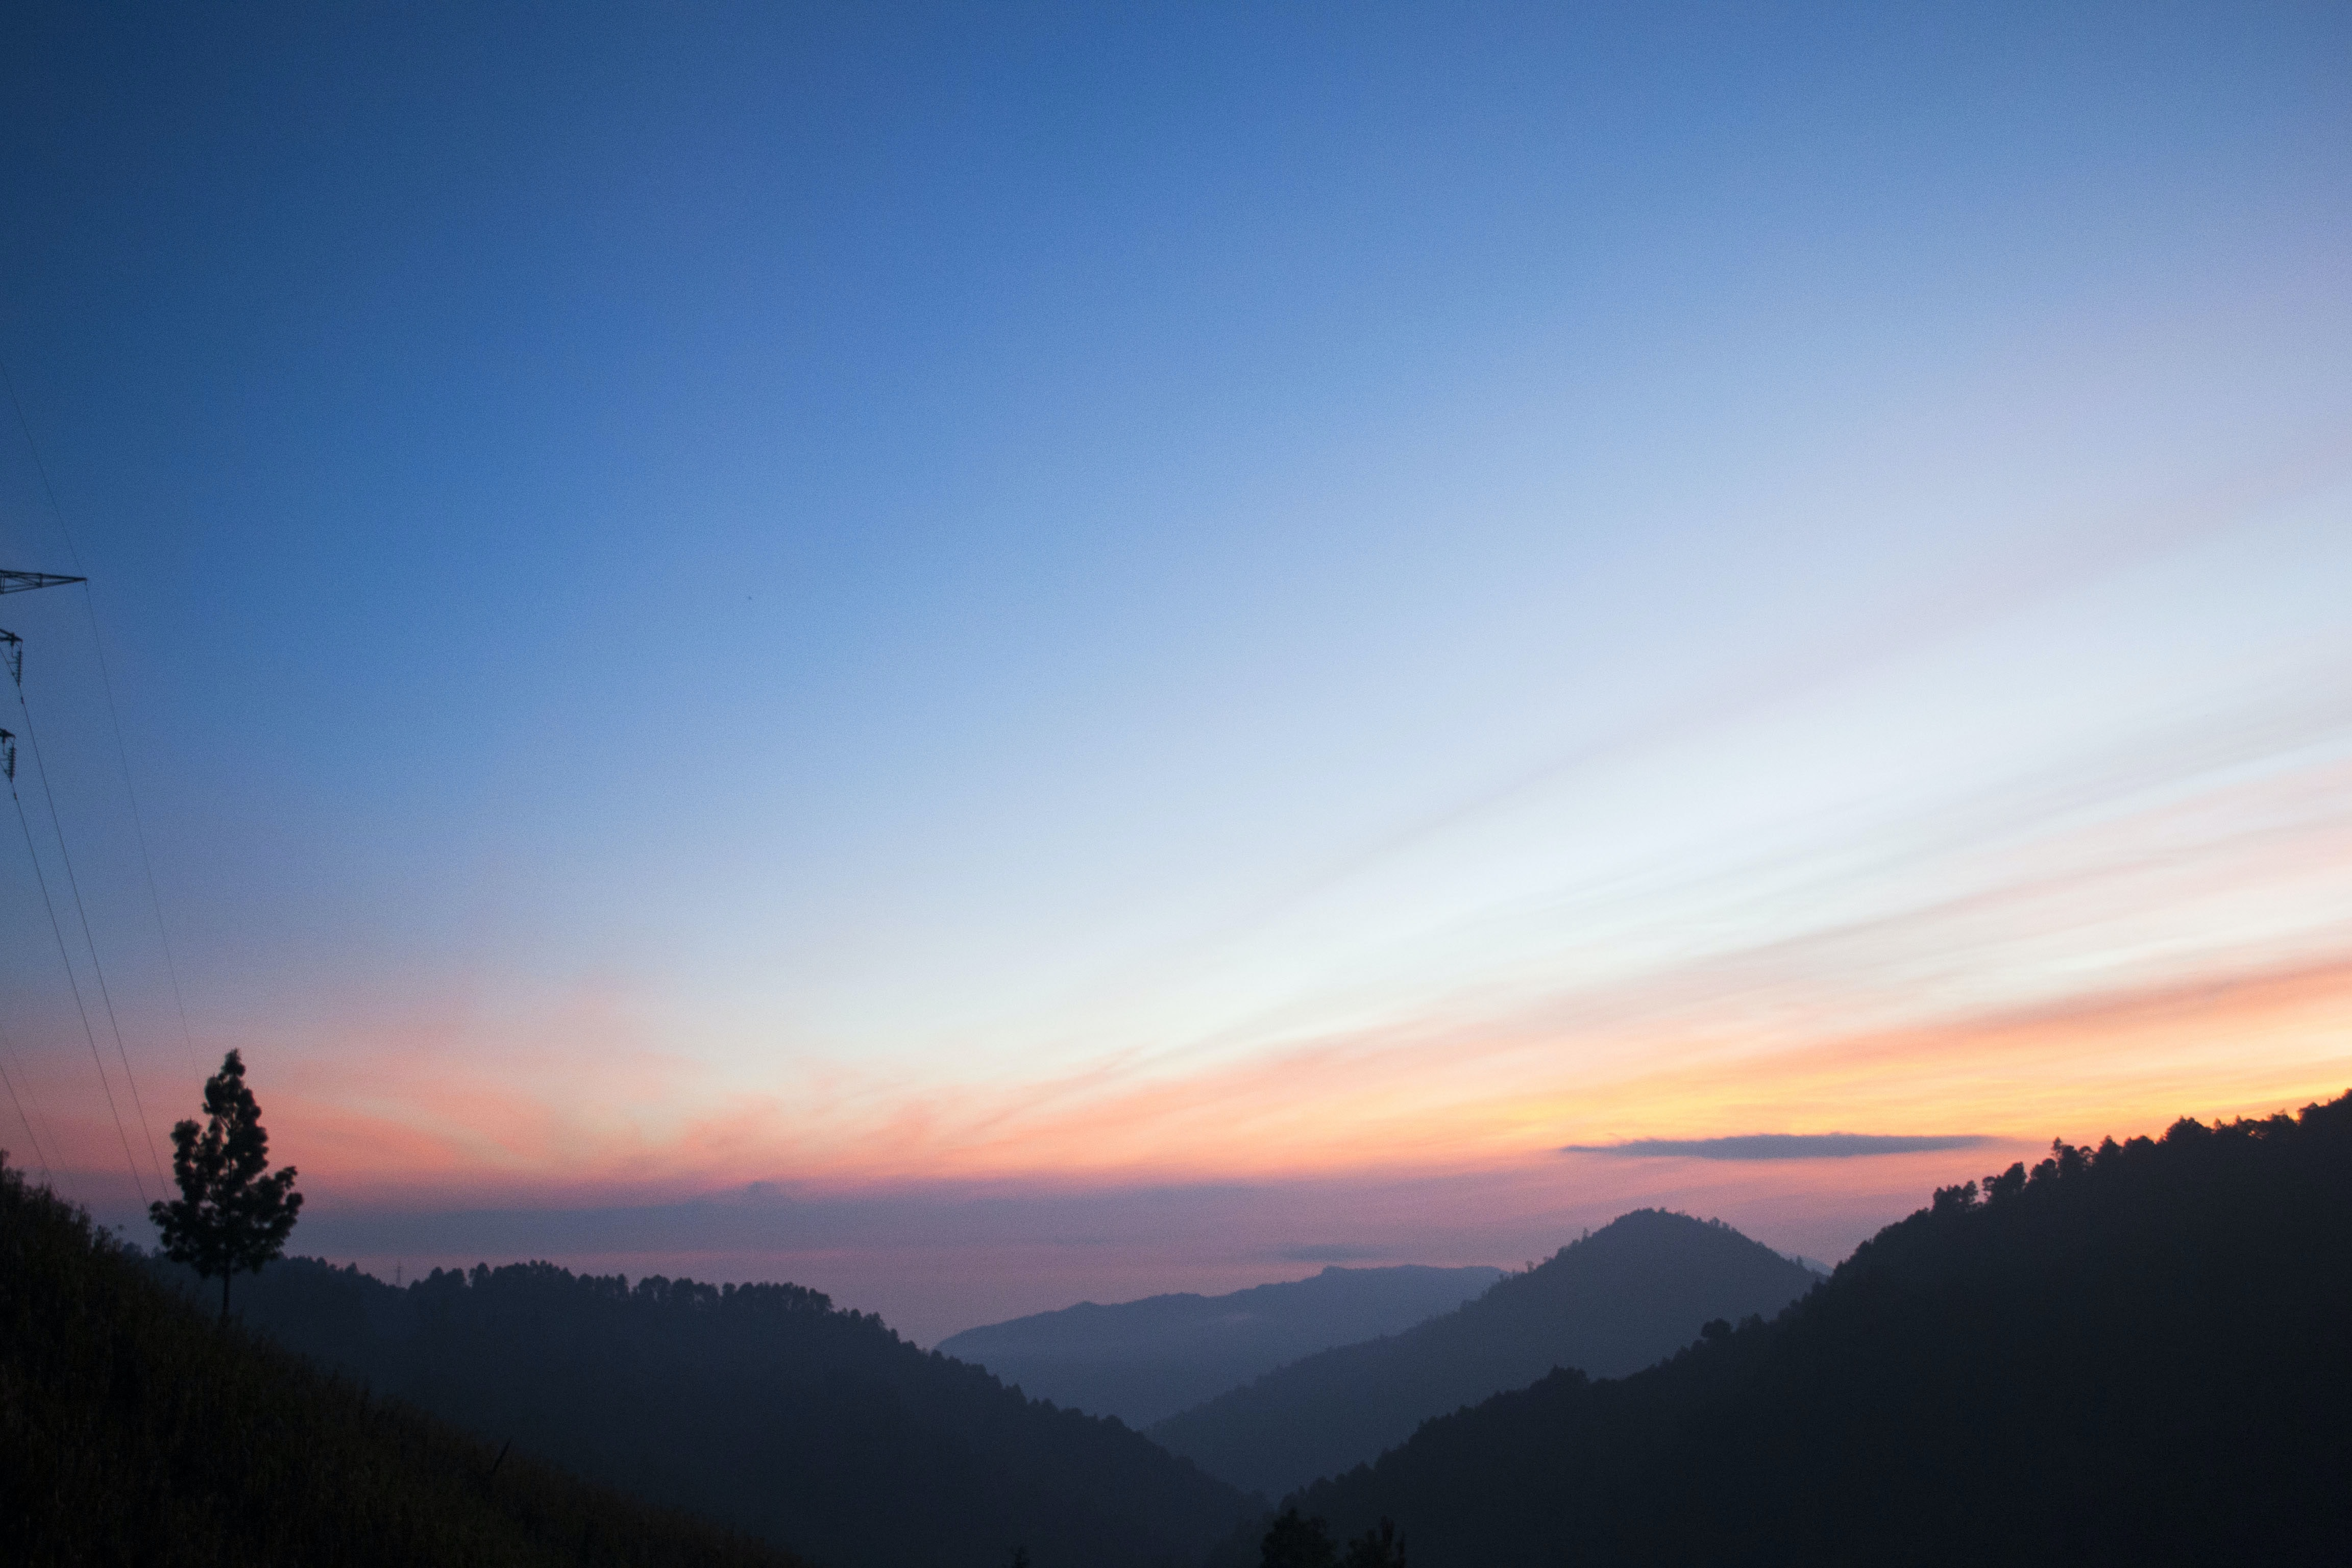 silhouette of mountains under blue sky